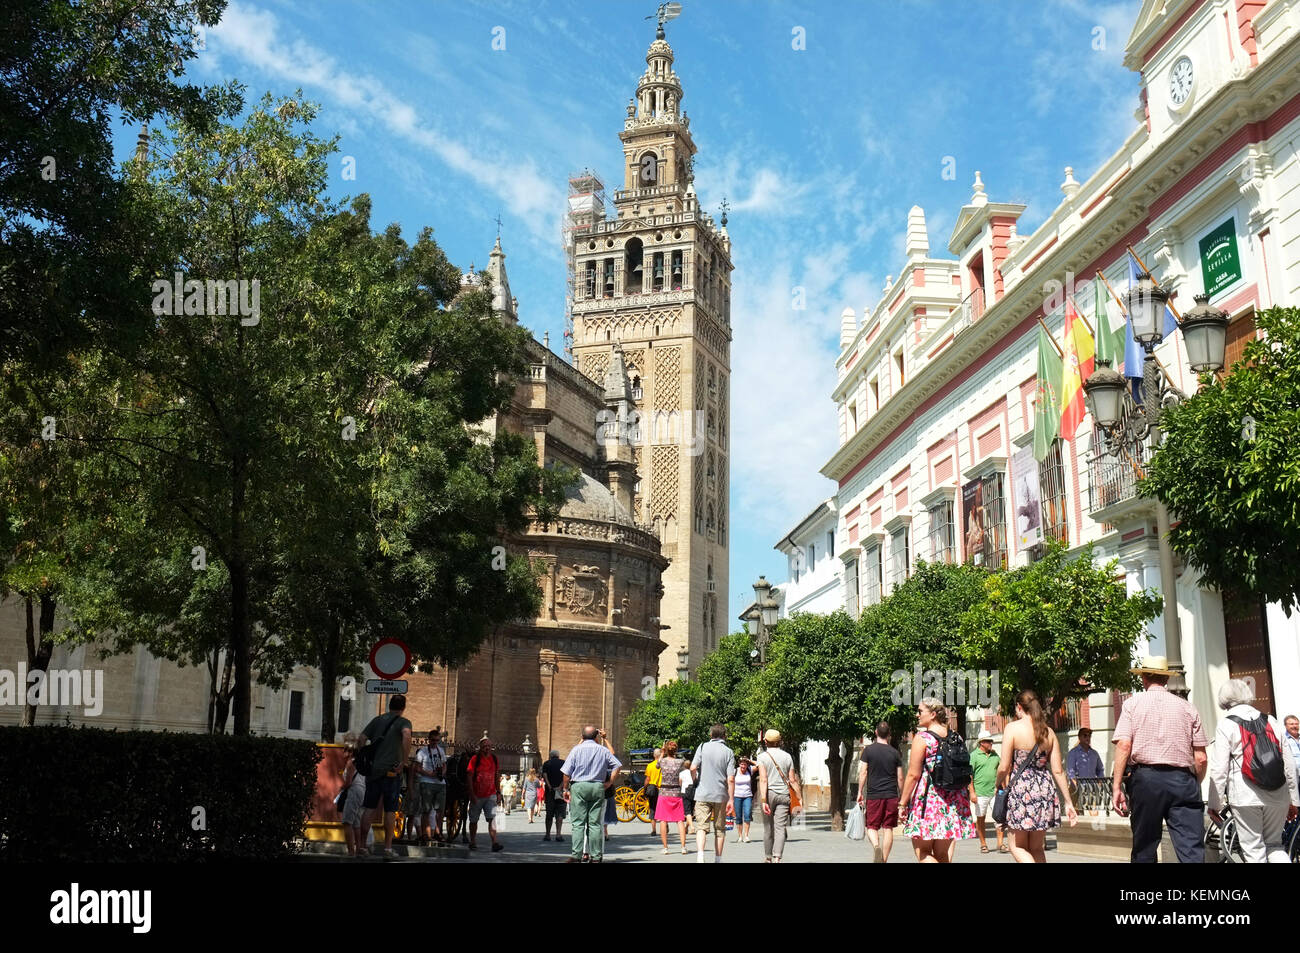 Cathedral of Saint Mary of the See, Seville/Sevilla, Andalucia, Spain, September 2017 - Stock Image